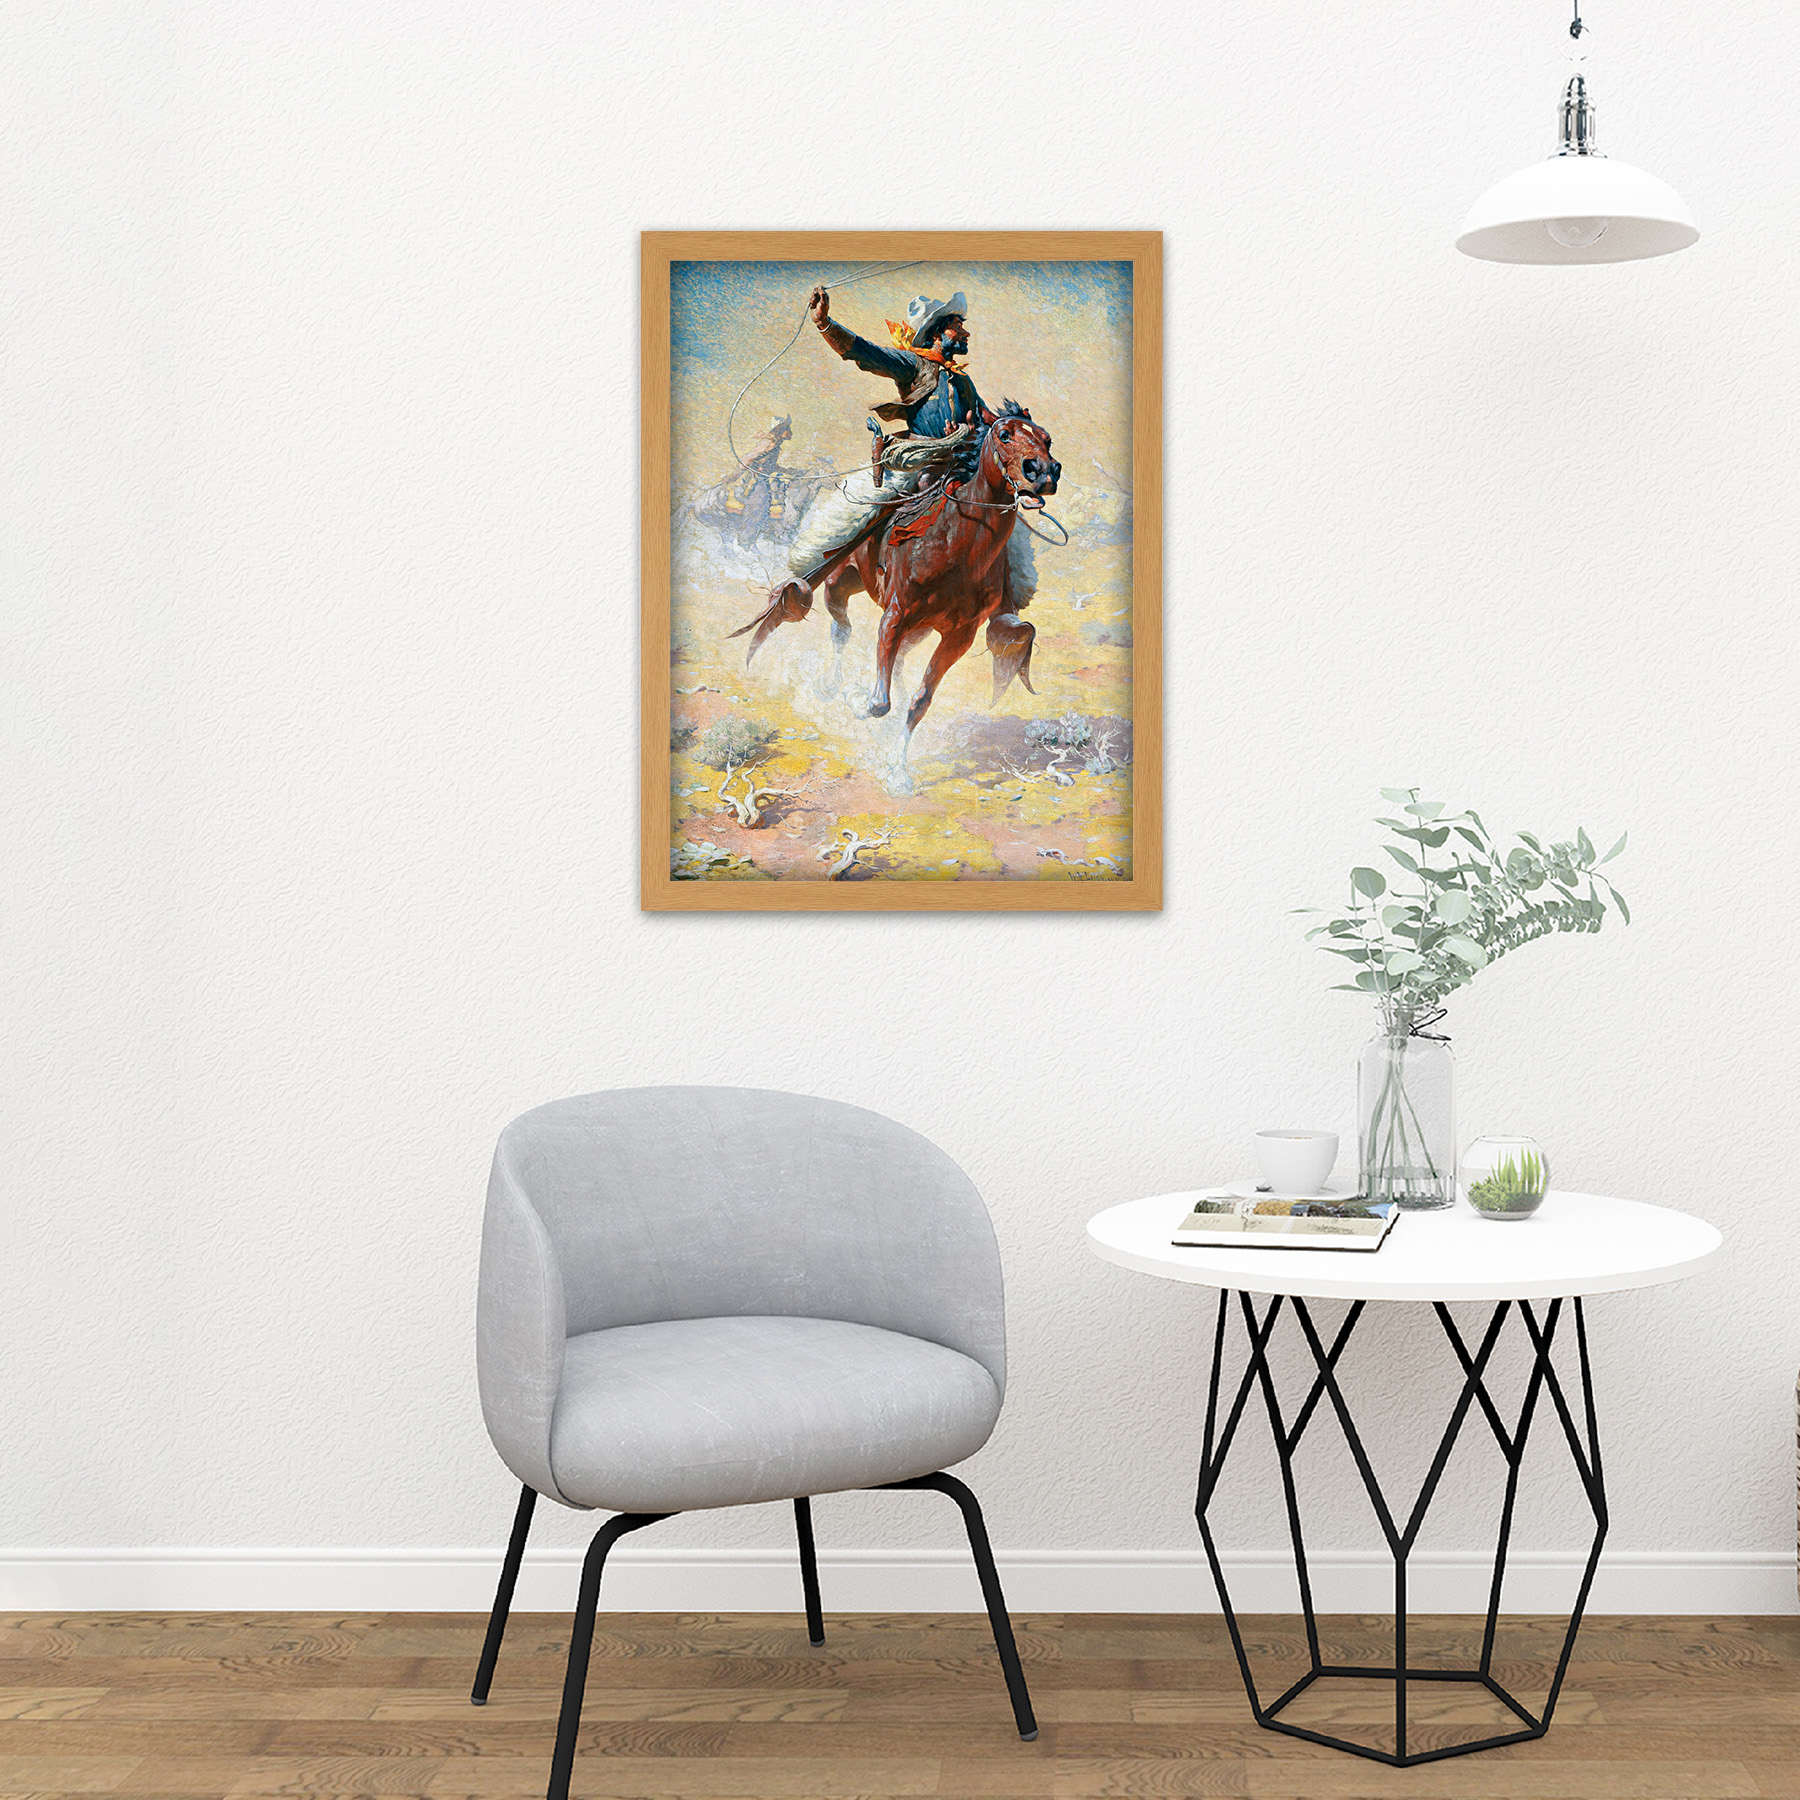 Leigh-The-Roping-Cowboy-Lasso-Horse-Painting-Large-Framed-Art-Print thumbnail 18